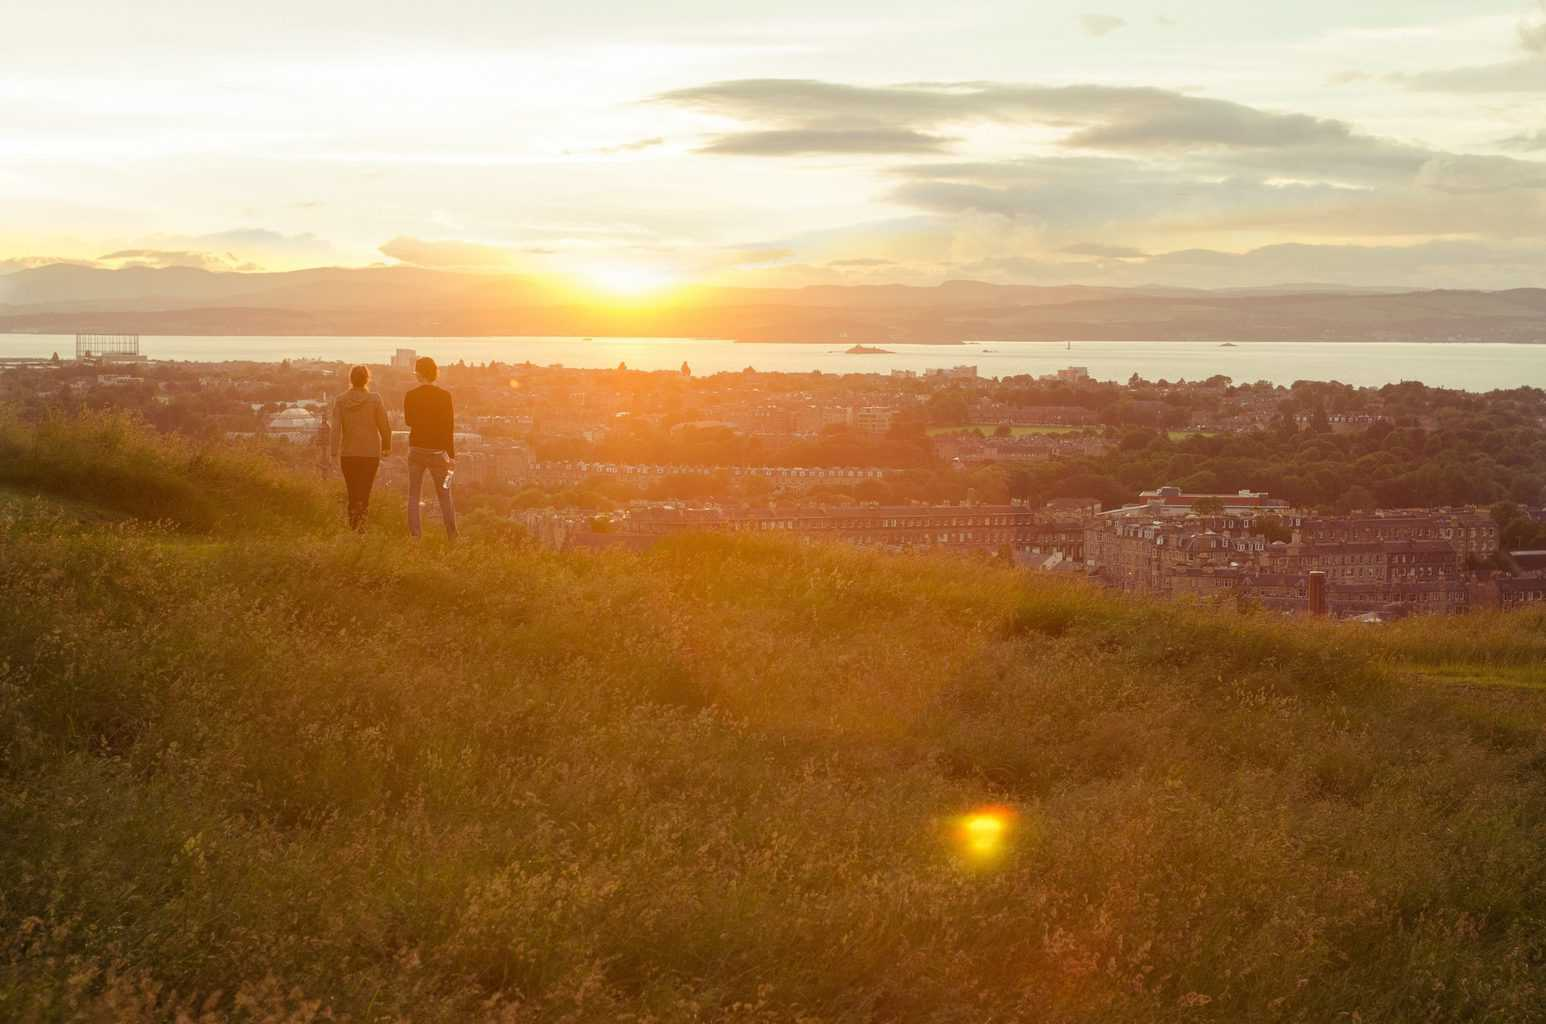 two person walking on green field viewing city